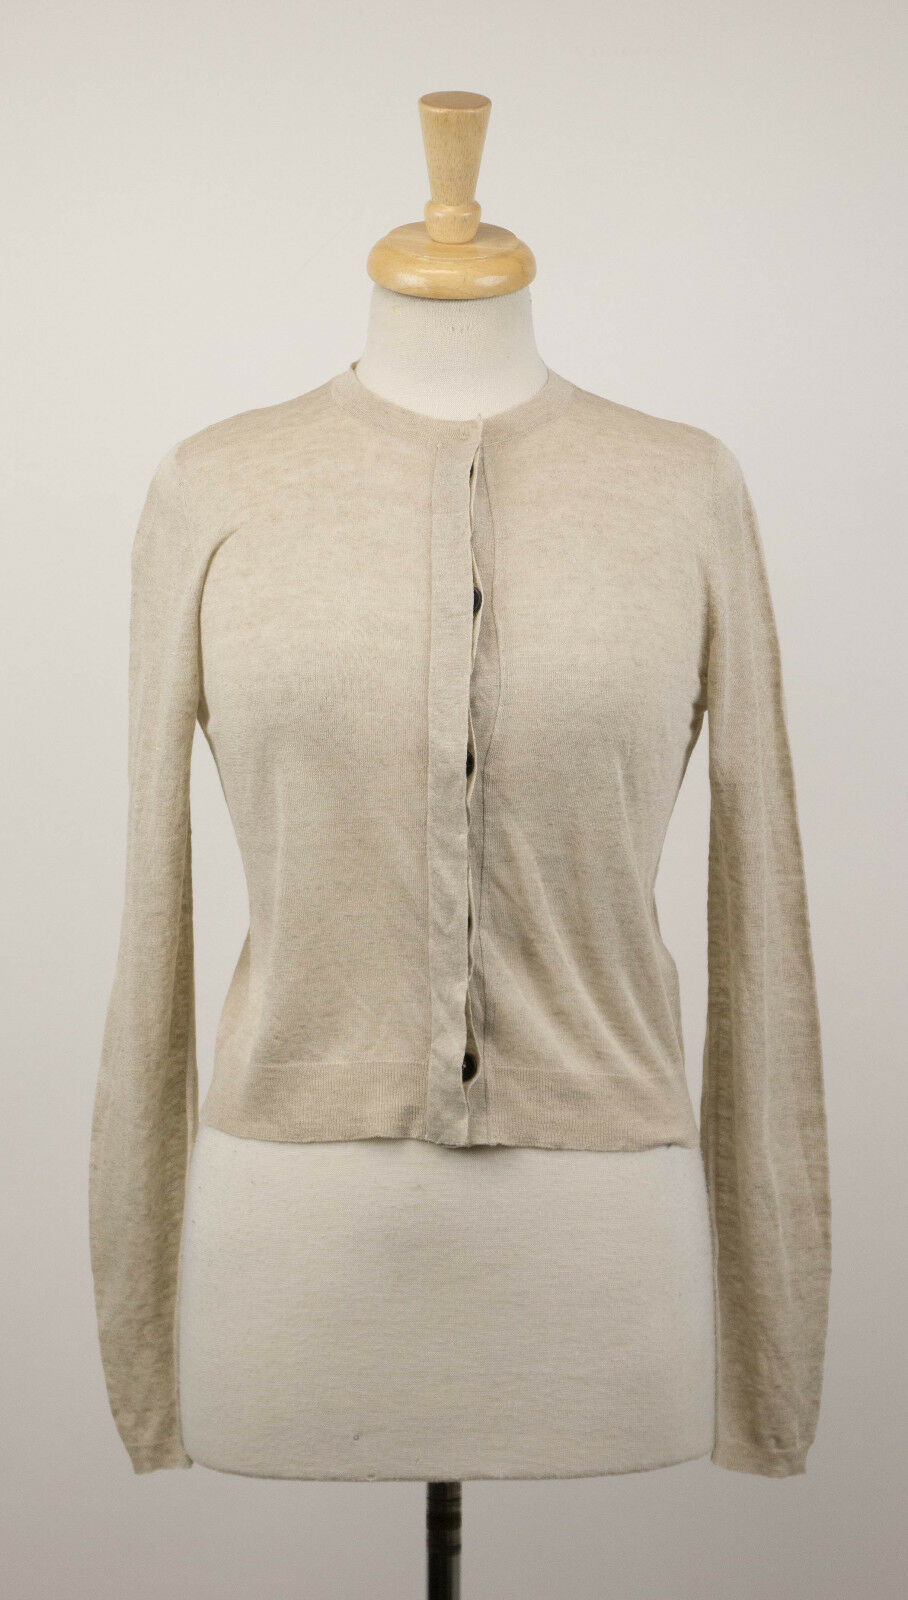 NWT BRUNELLO CUCINELLI Woman's Brown Linen Blend Cardigan Sweater Size S